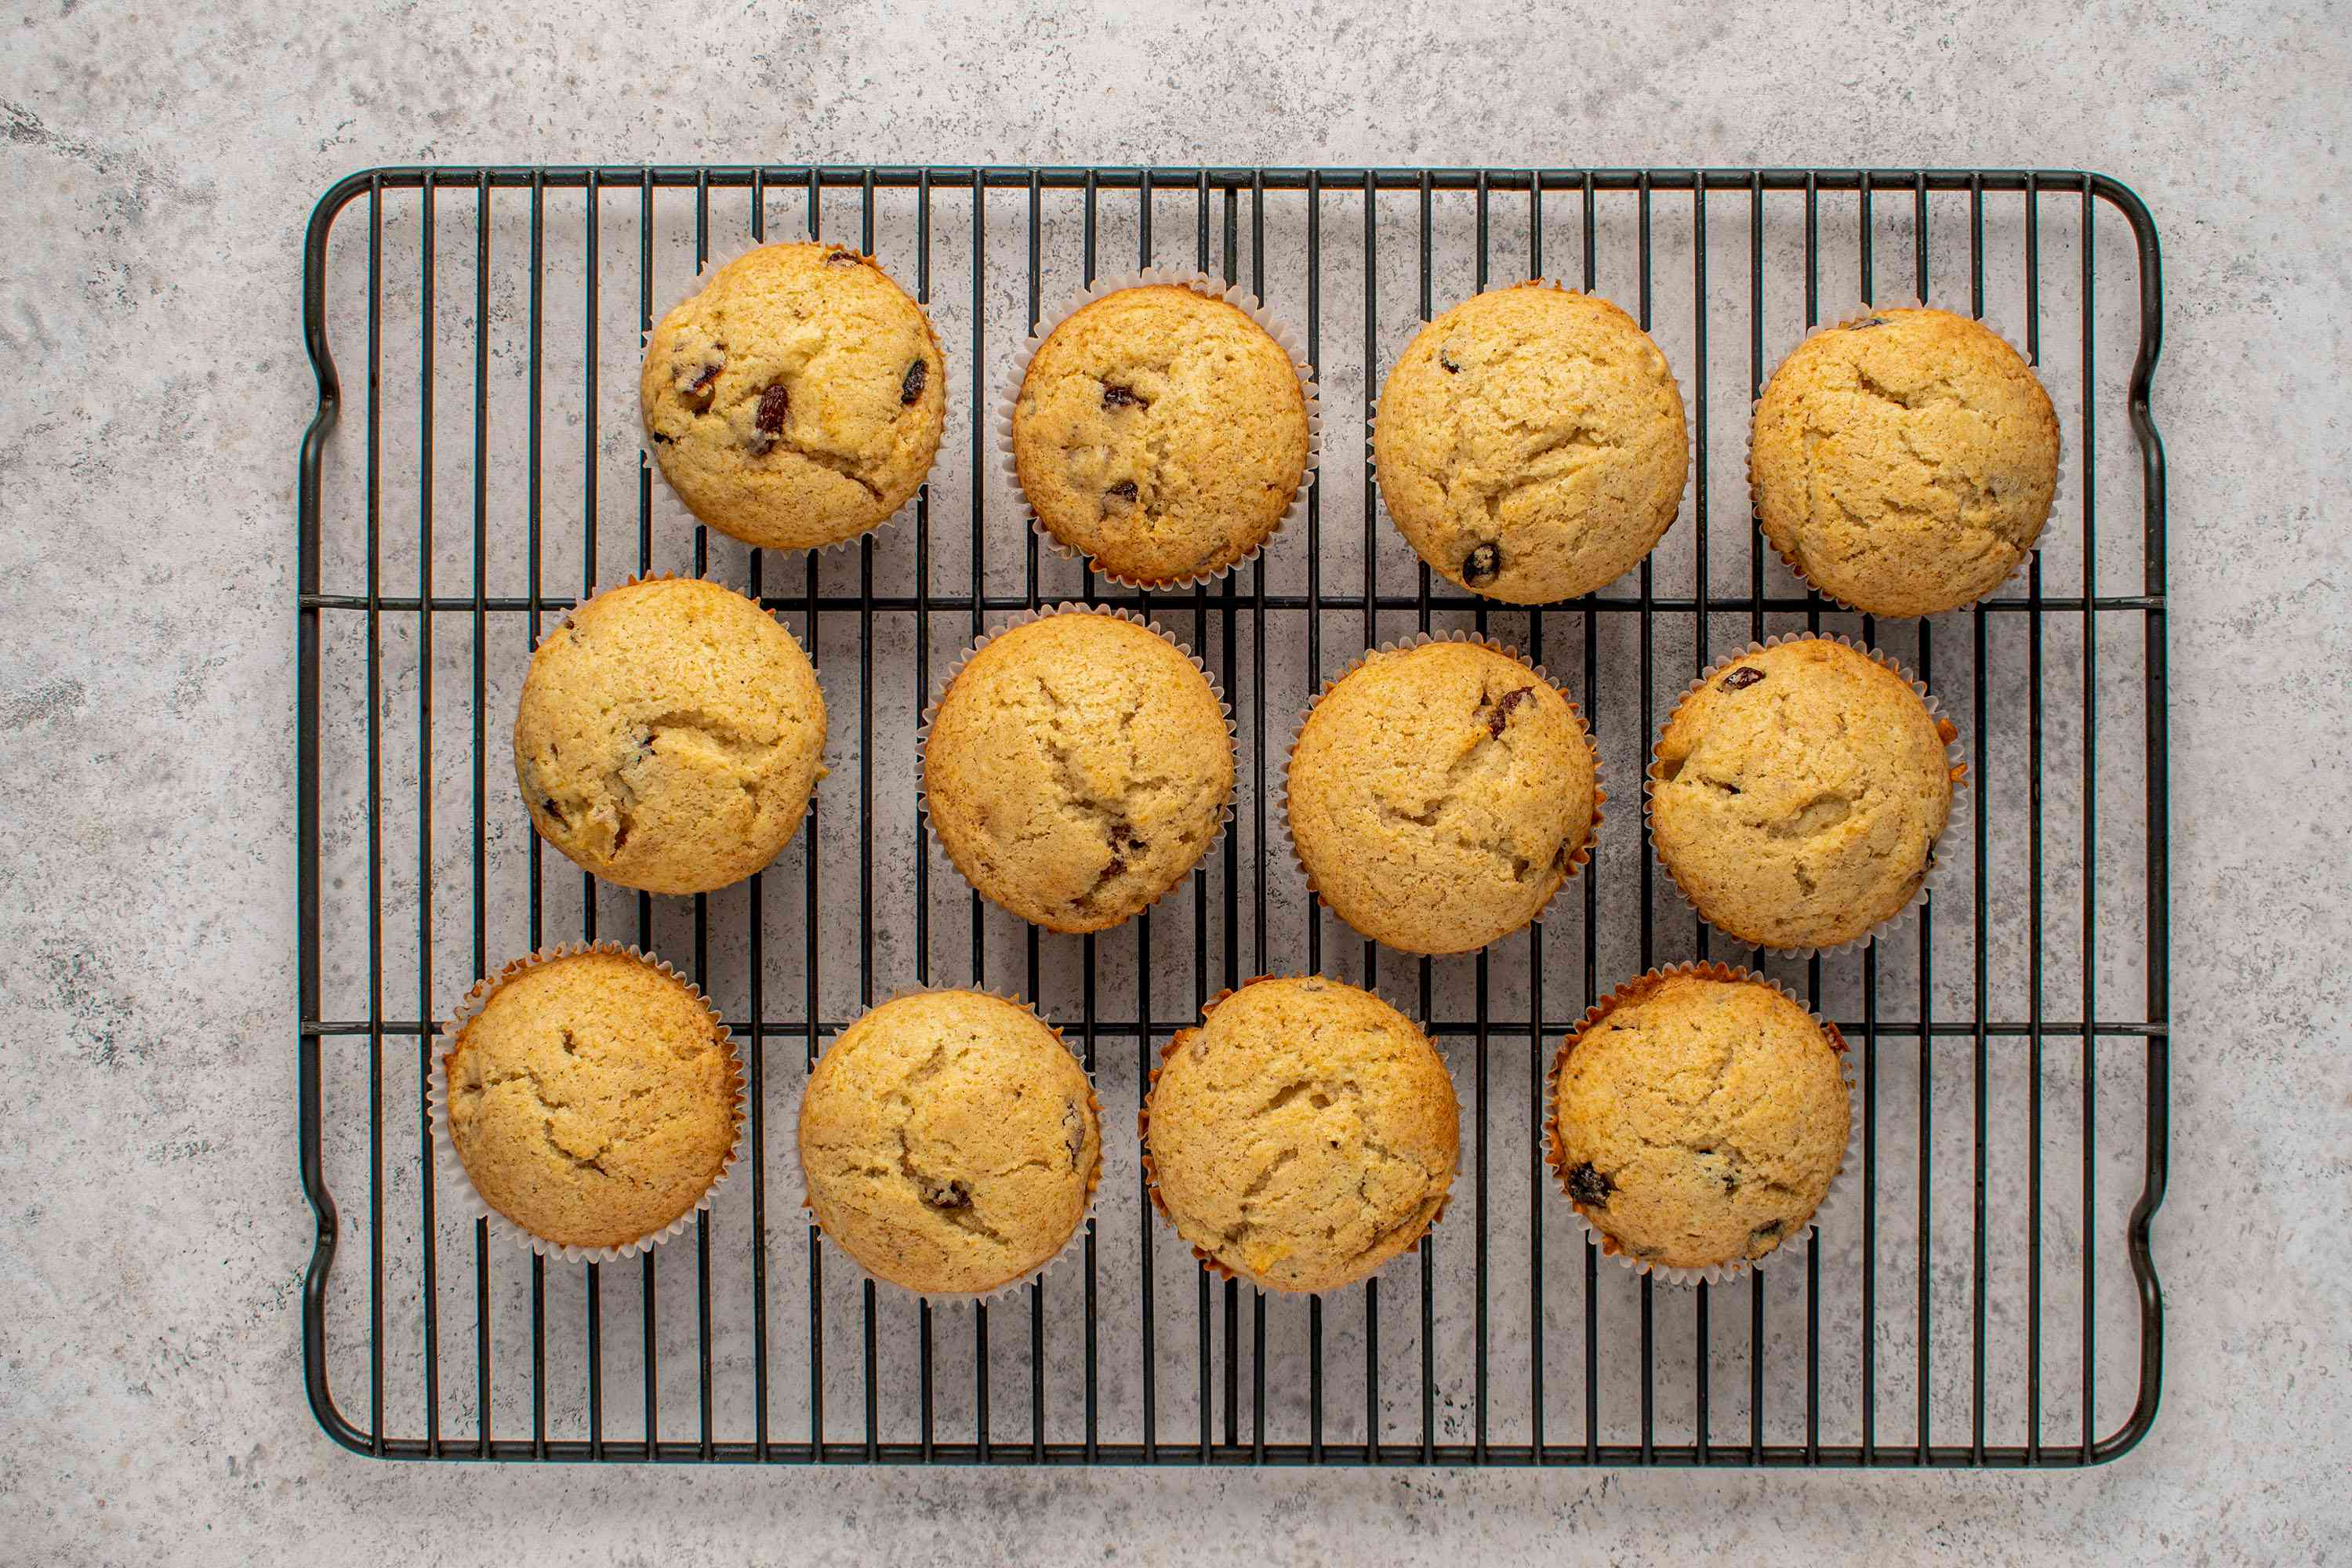 cupcakes on a cooling rack